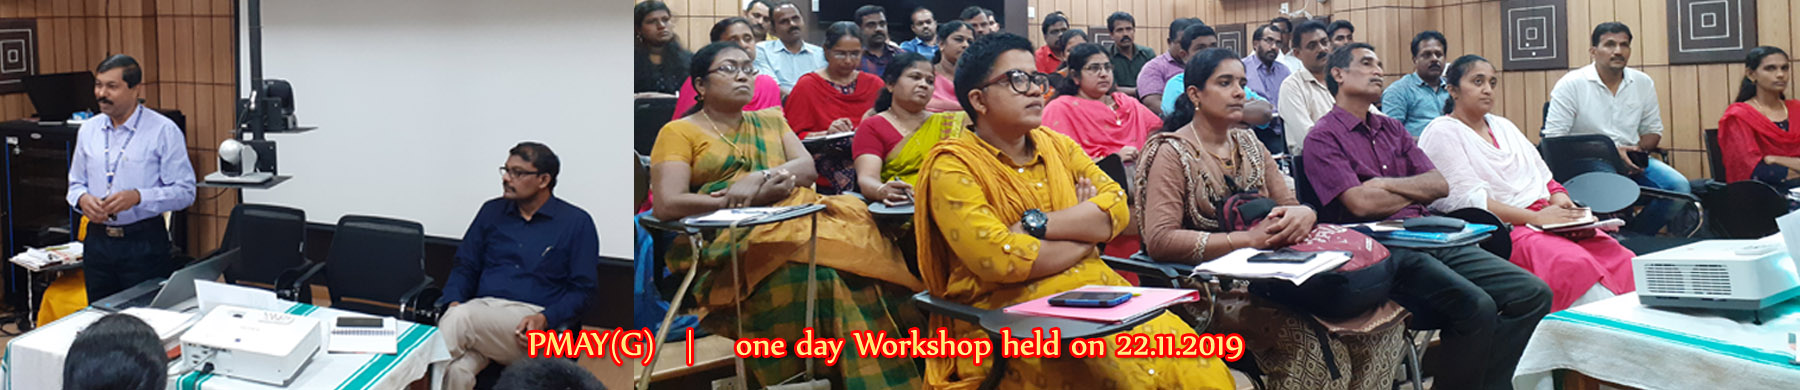 PMAY_Workshop_22_11_2019